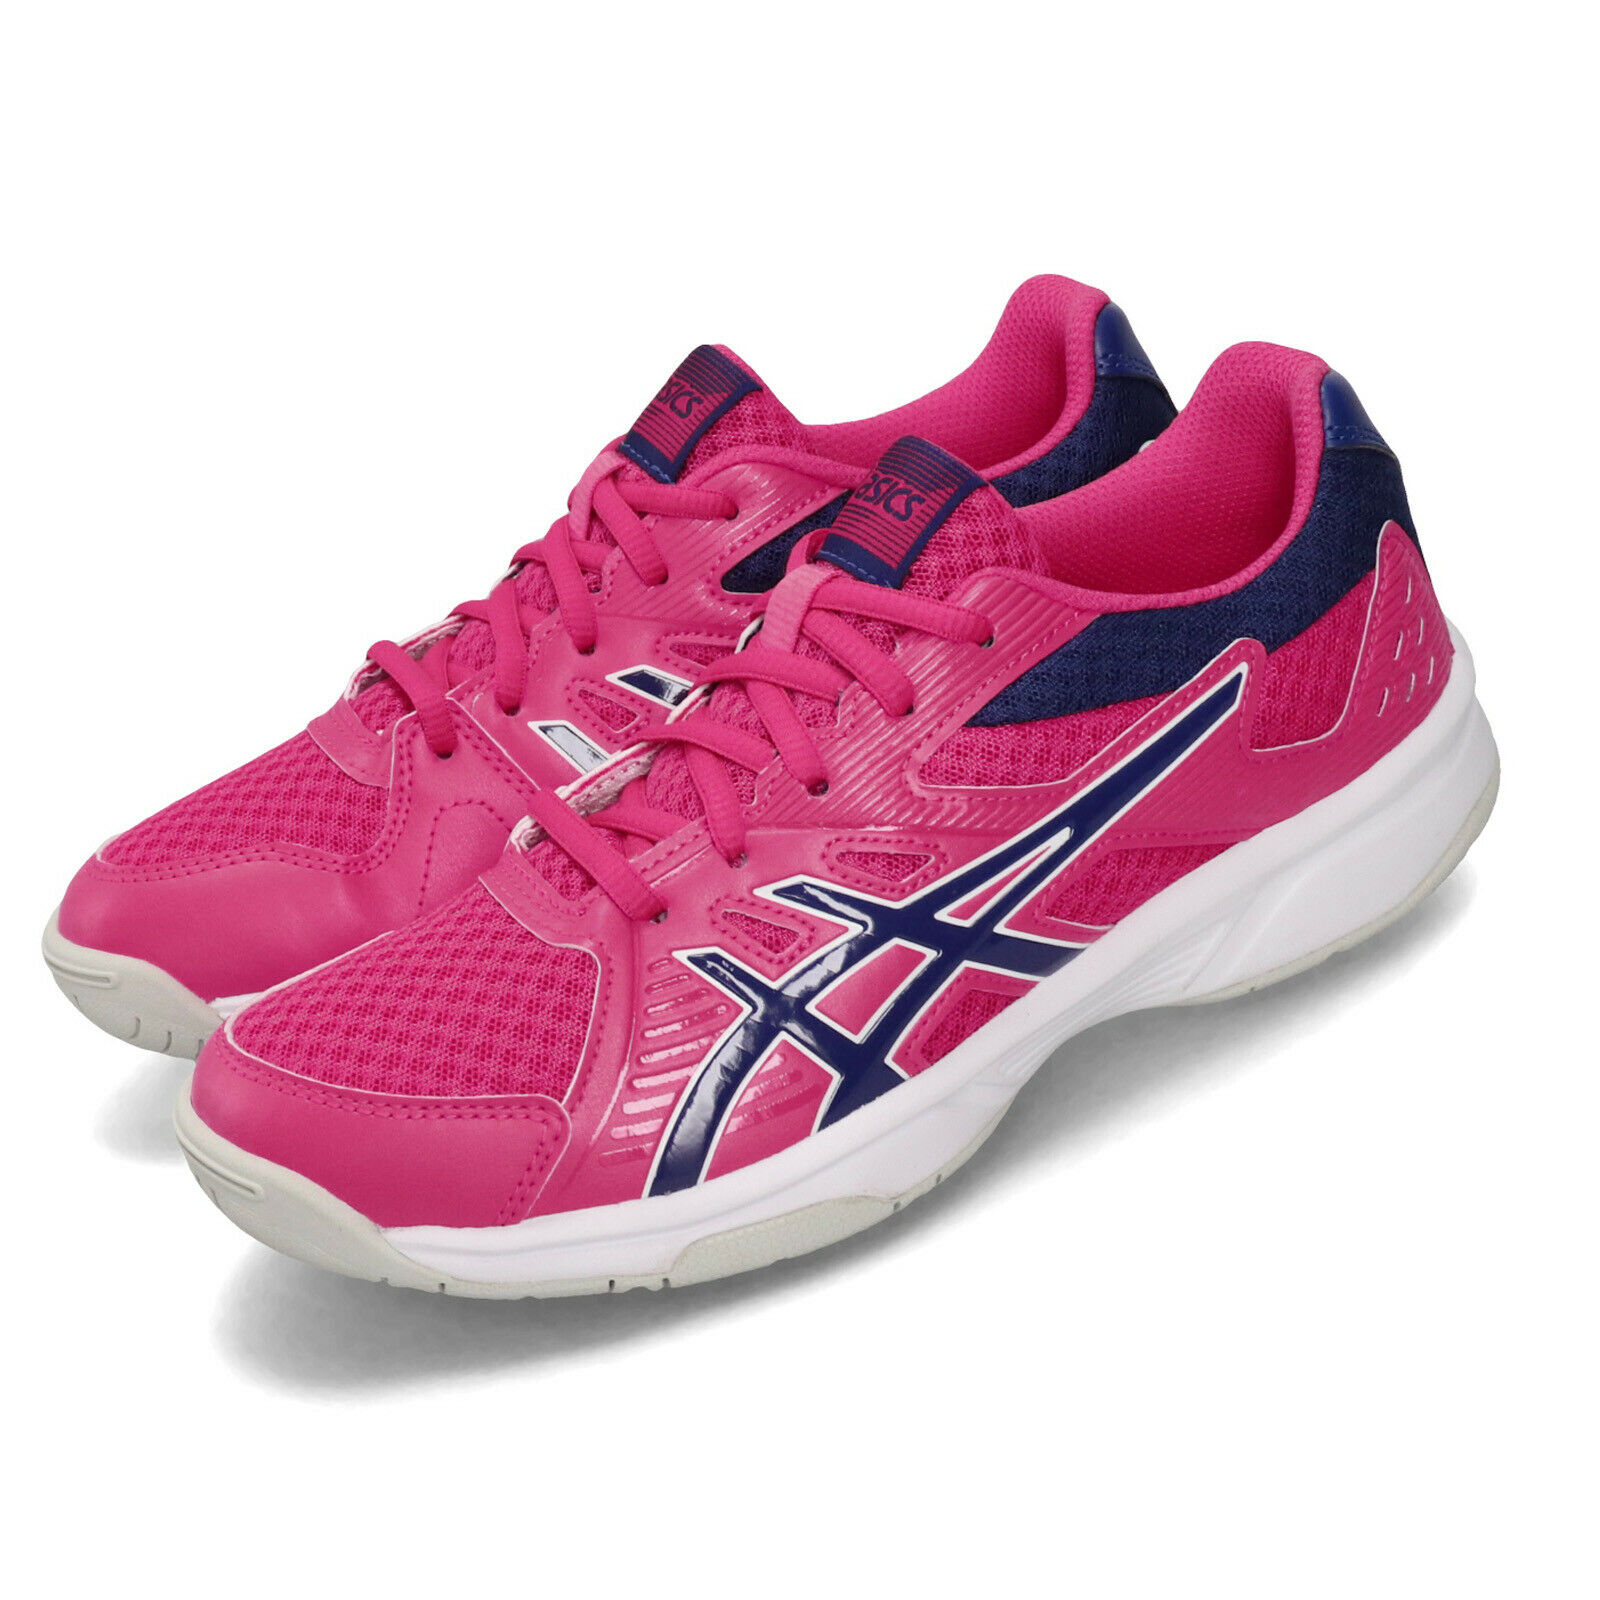 Asics Upcourt 3 Fuchsia Purple Women Volleyball  Badminton shoes 1072A012-500  new sadie